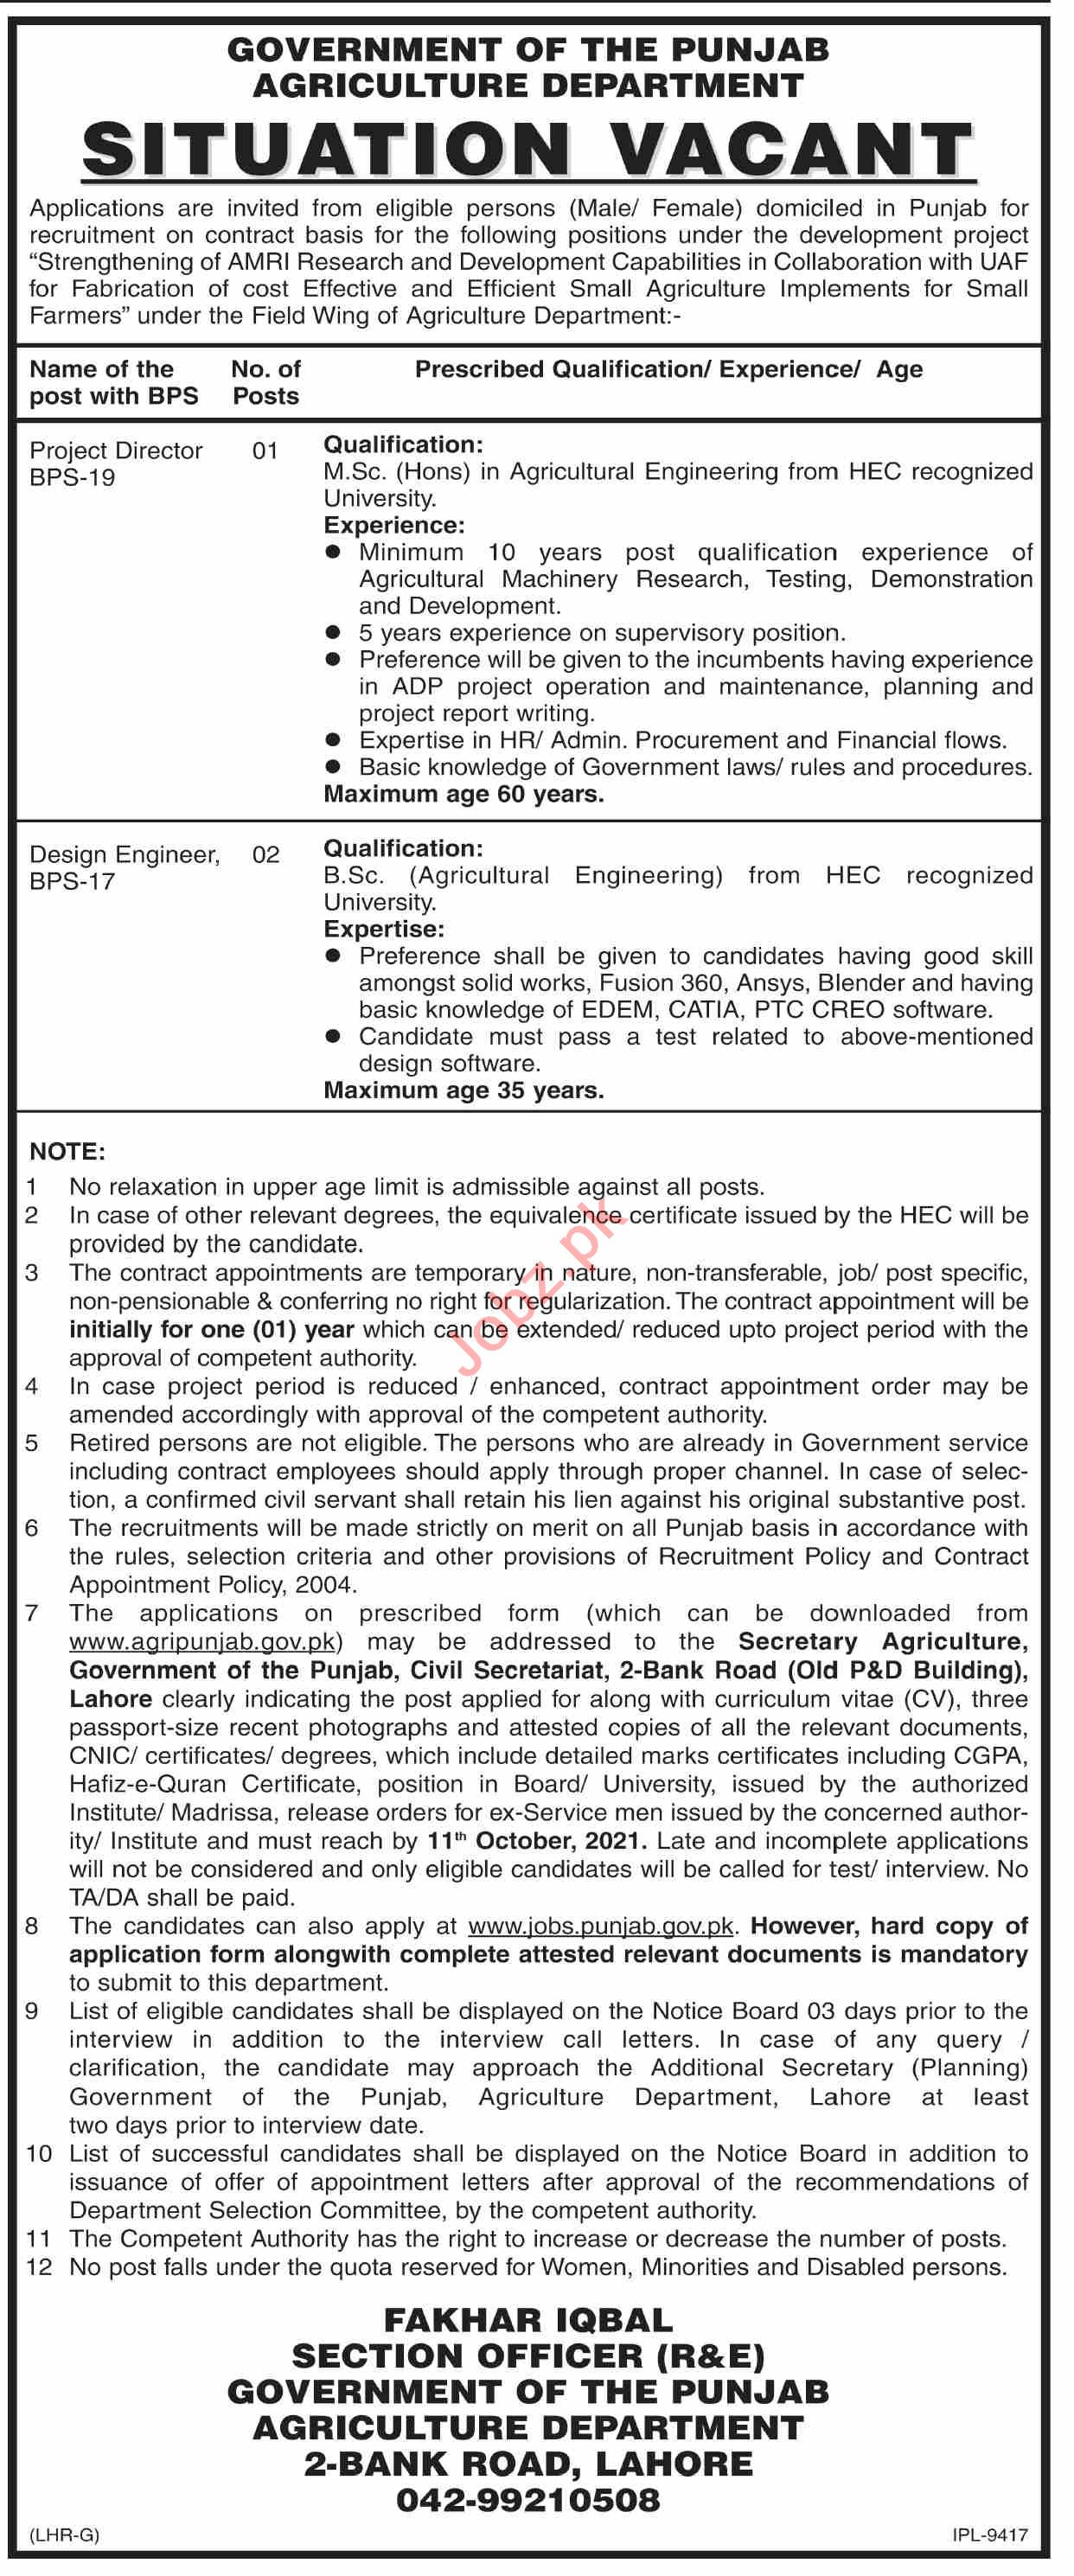 Punjab Agriculture Department Jobs 2021 for Project Director